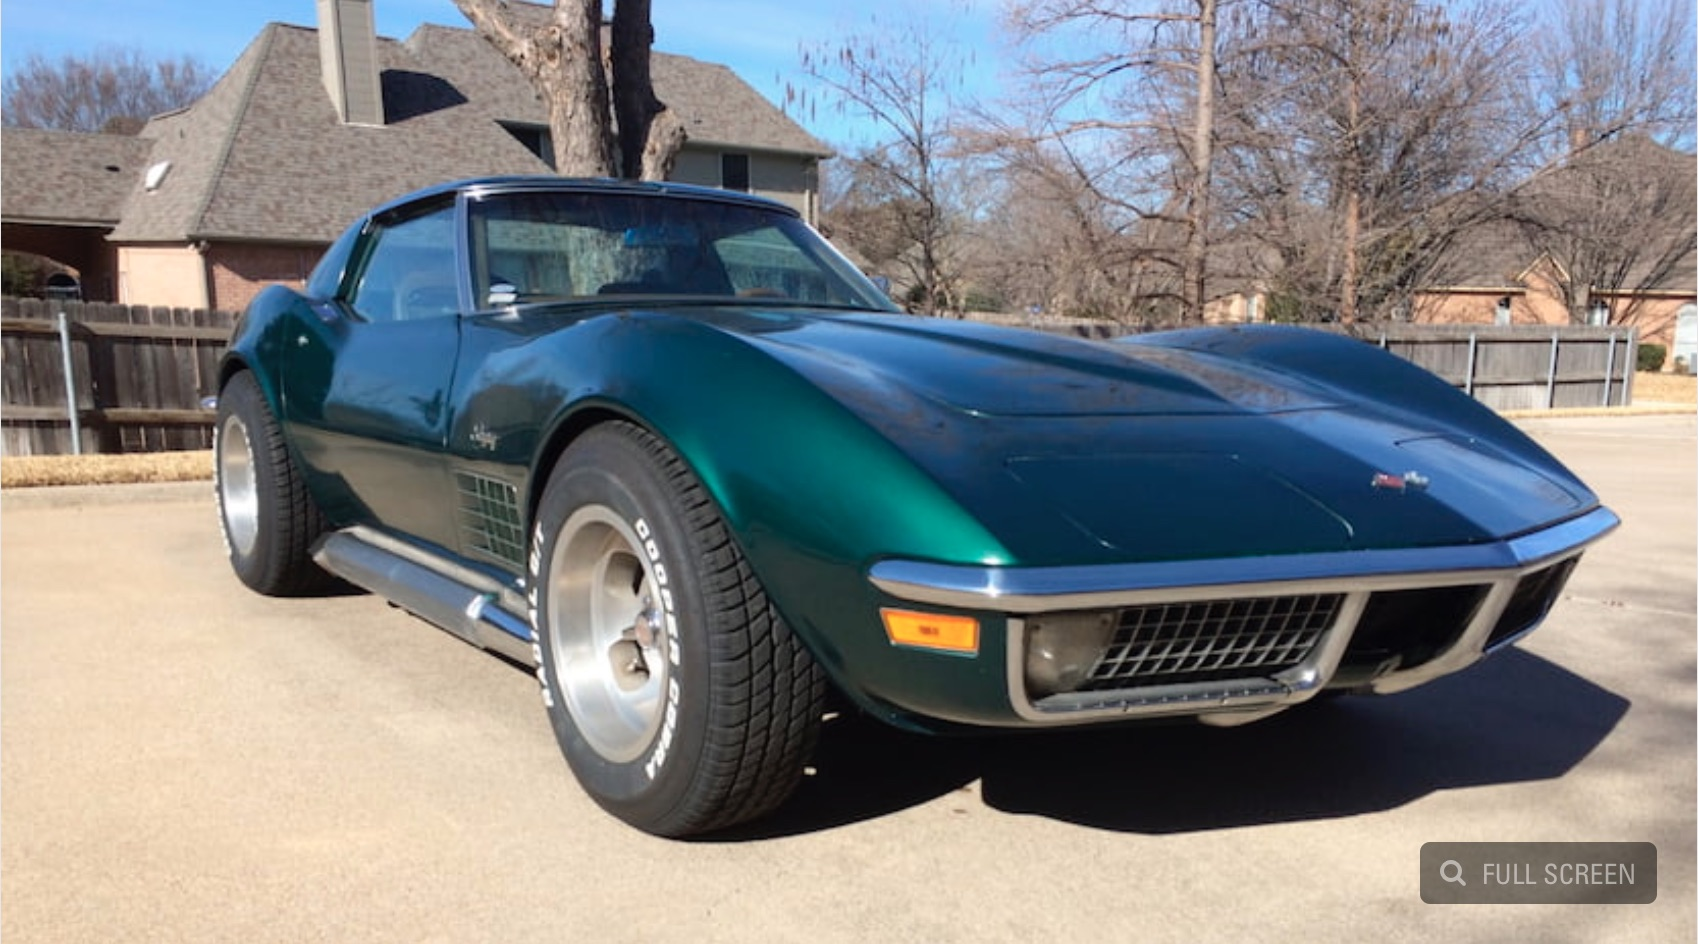 Day Two Beauty: This 1971 Chevrolet Corvette Is A Beauty Of An Emerald!